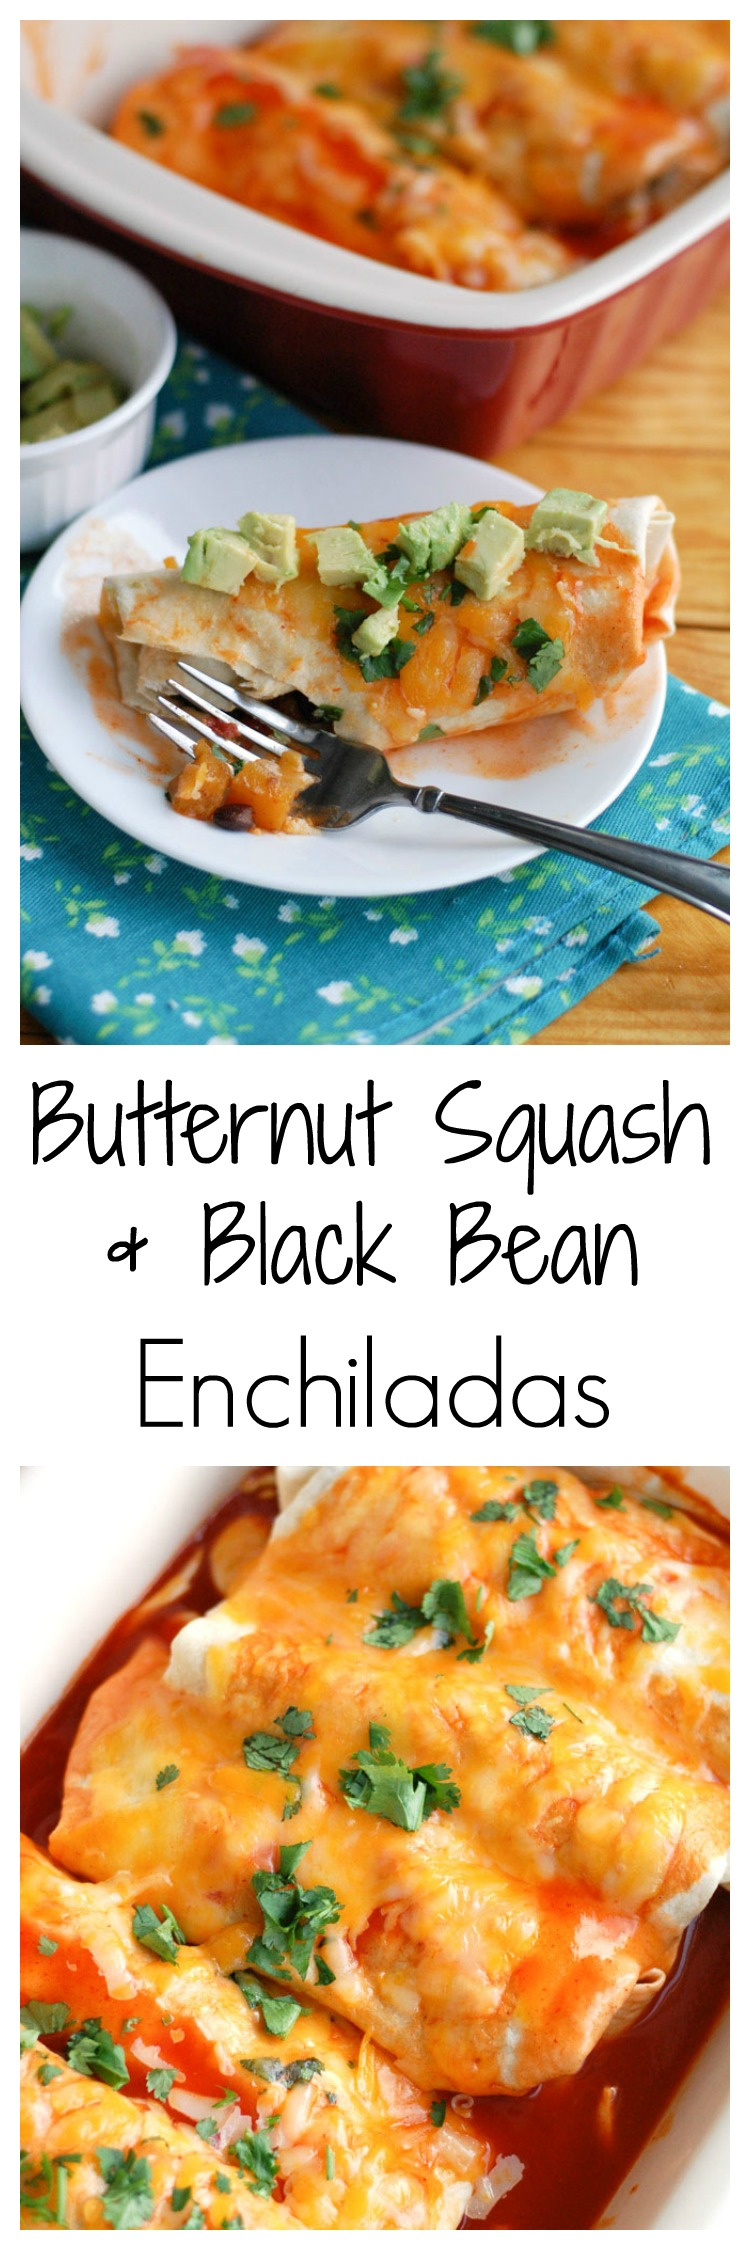 Butternut squash and black bean enchiladas #YesYouCan #ad